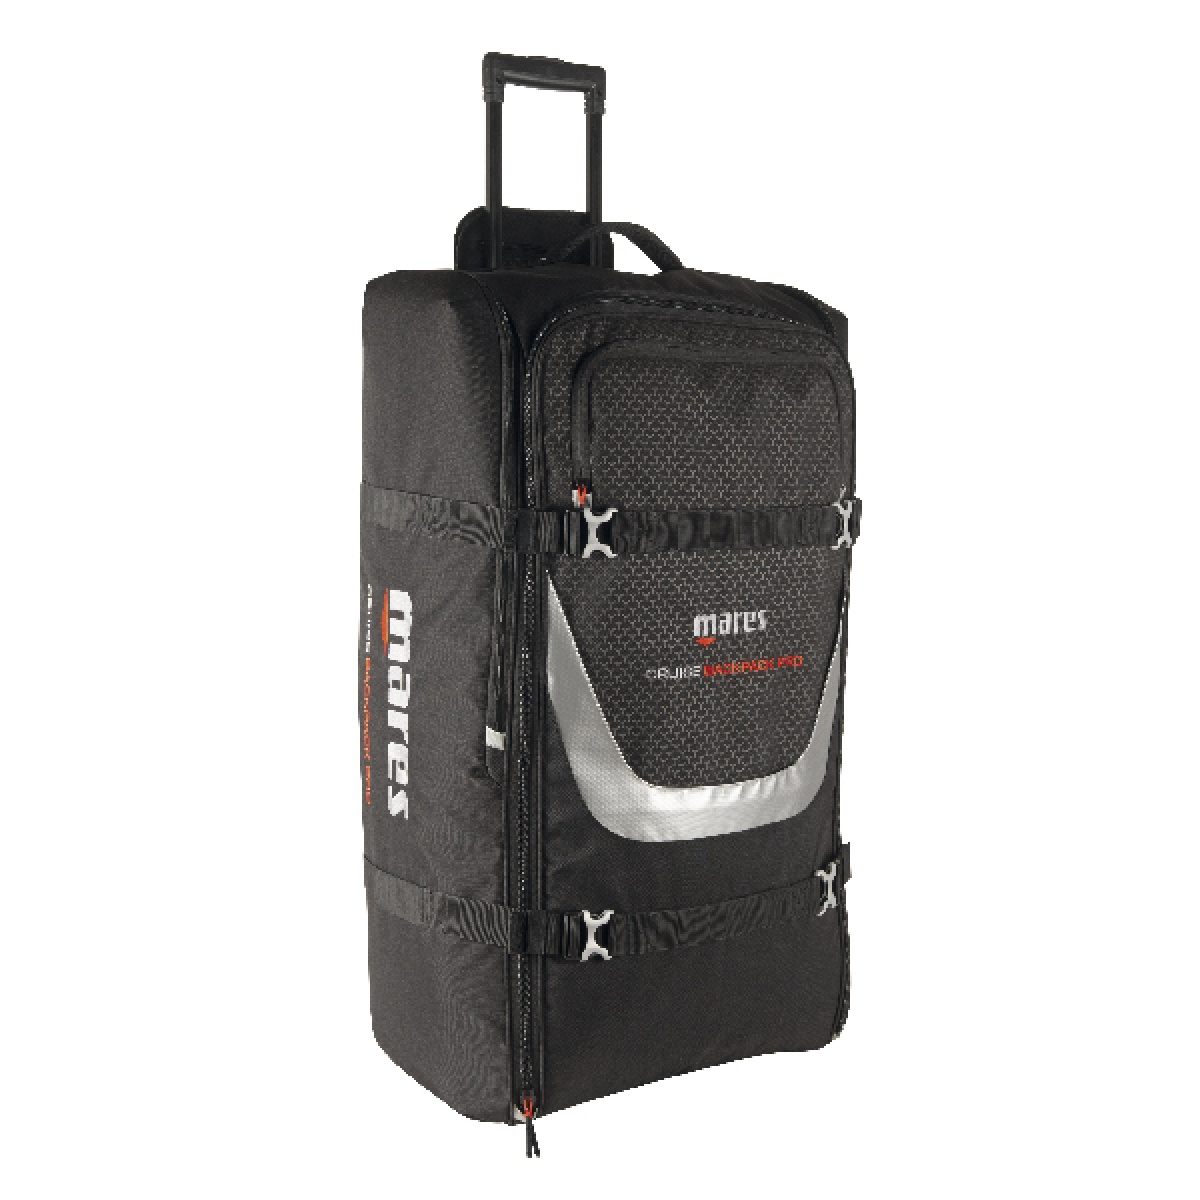 MARES CRUISE BACKPACK PRO New Сумка дорожная, 128л